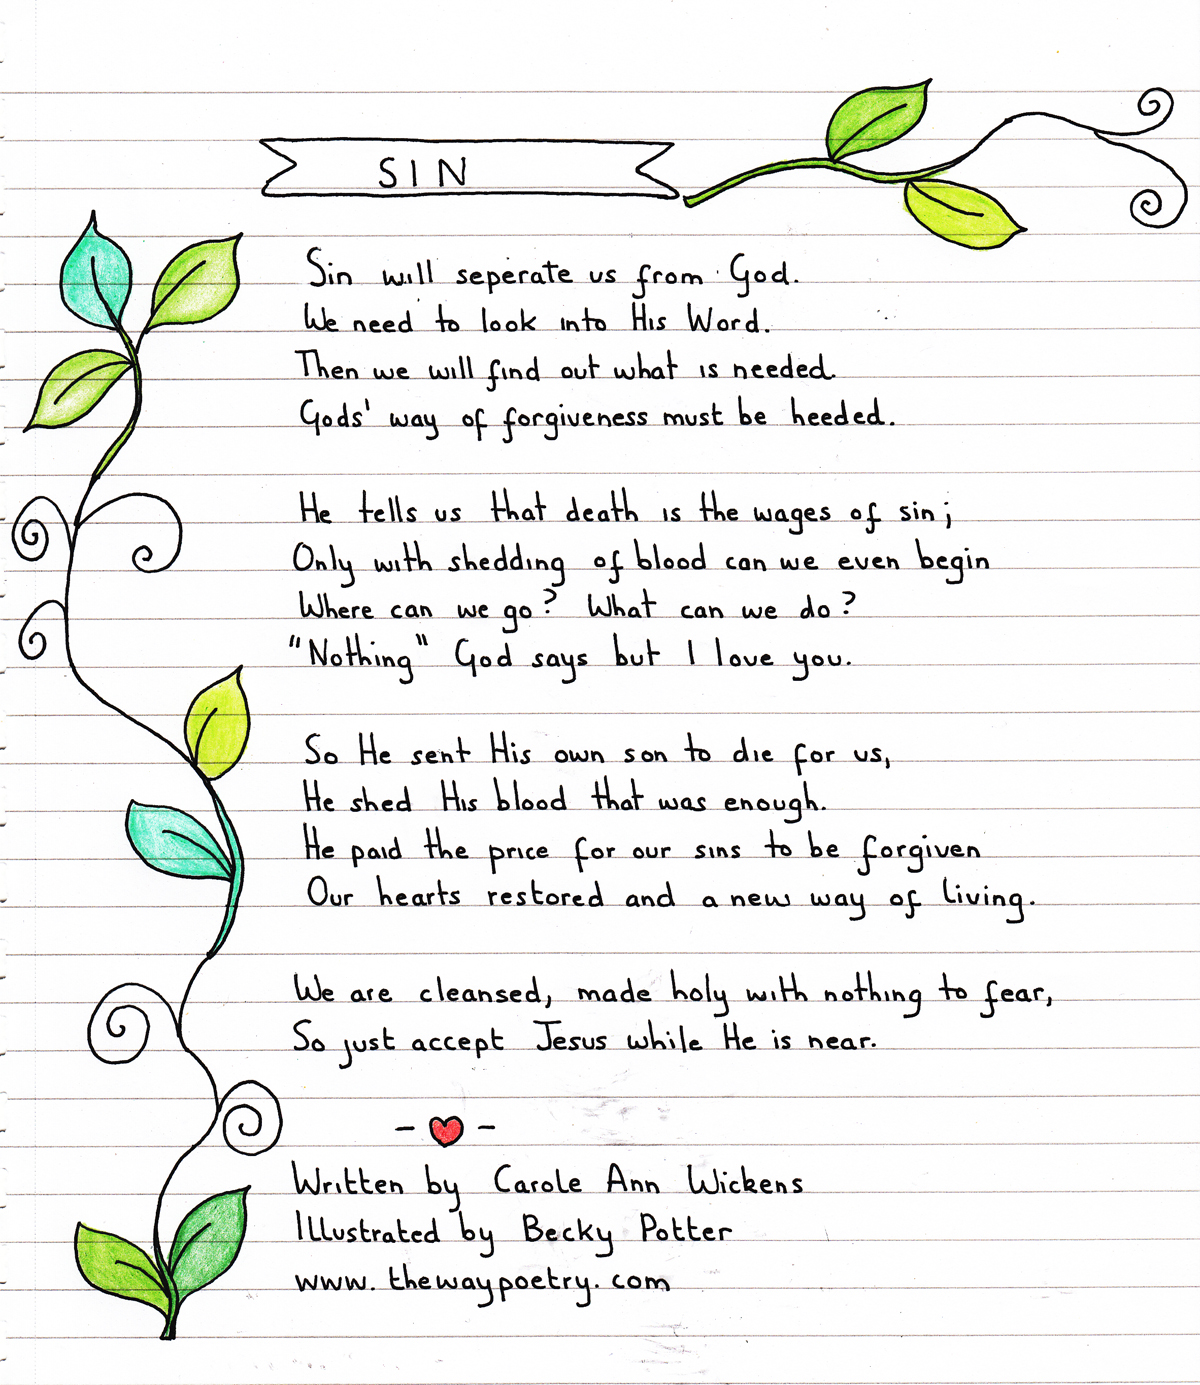 Sin by Carole Ann Wickens